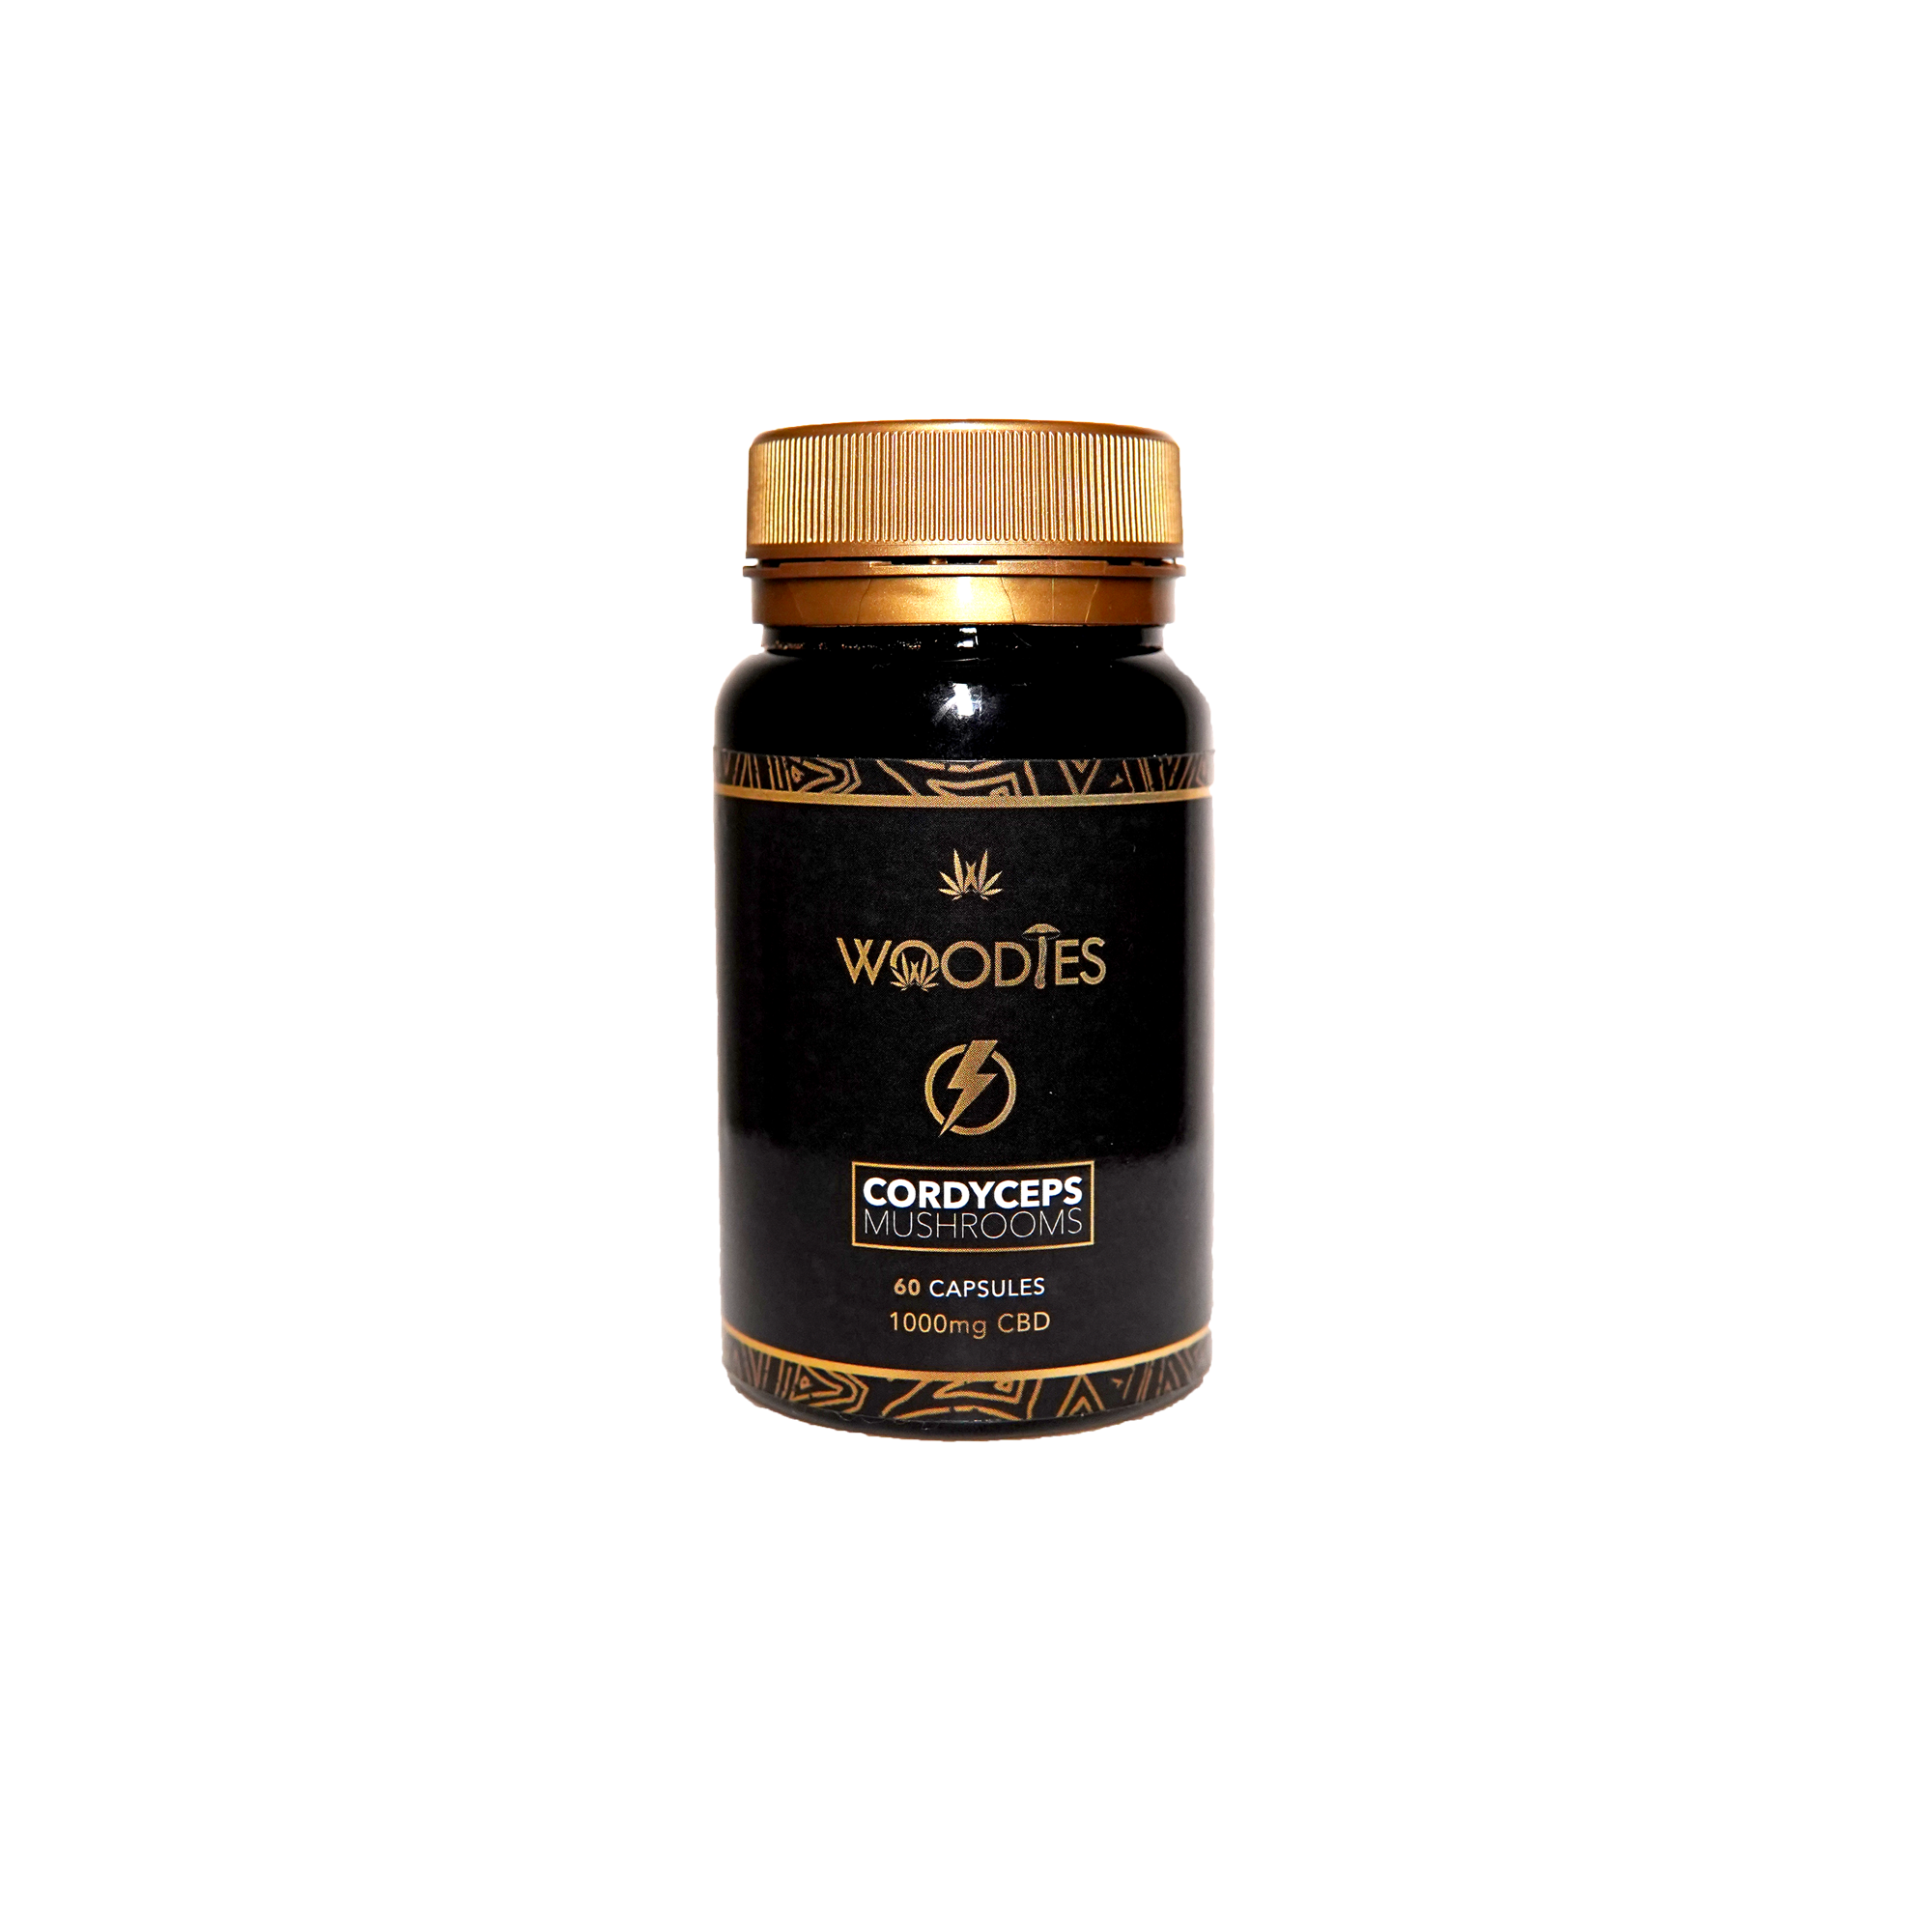 Woodies CBD and Cordyceps Mushroom